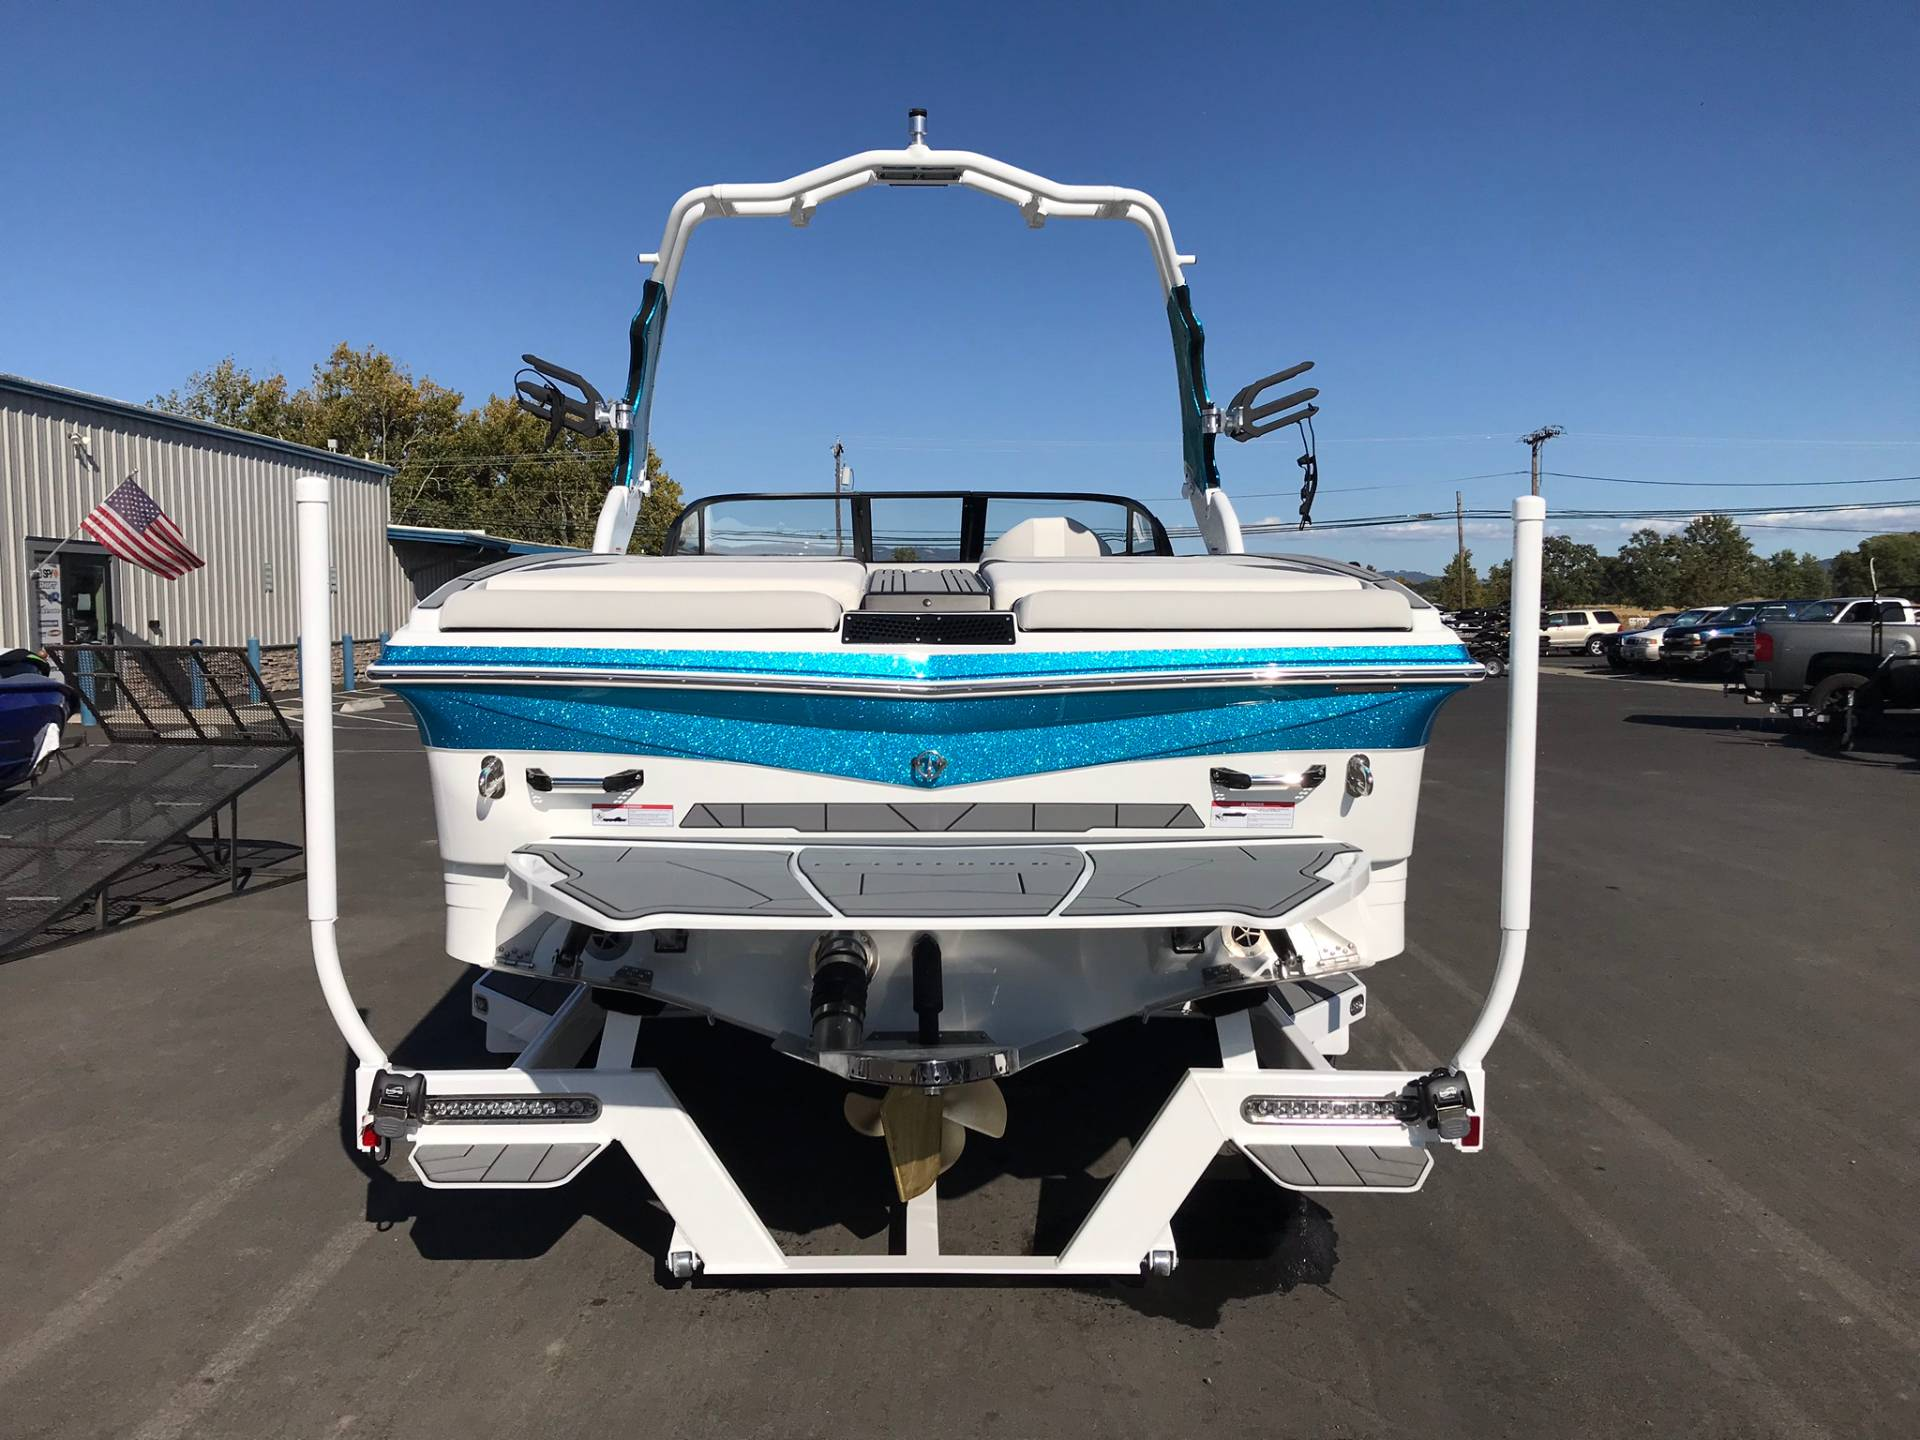 2020 Centurion Vi24 in Lakeport, California - Photo 2